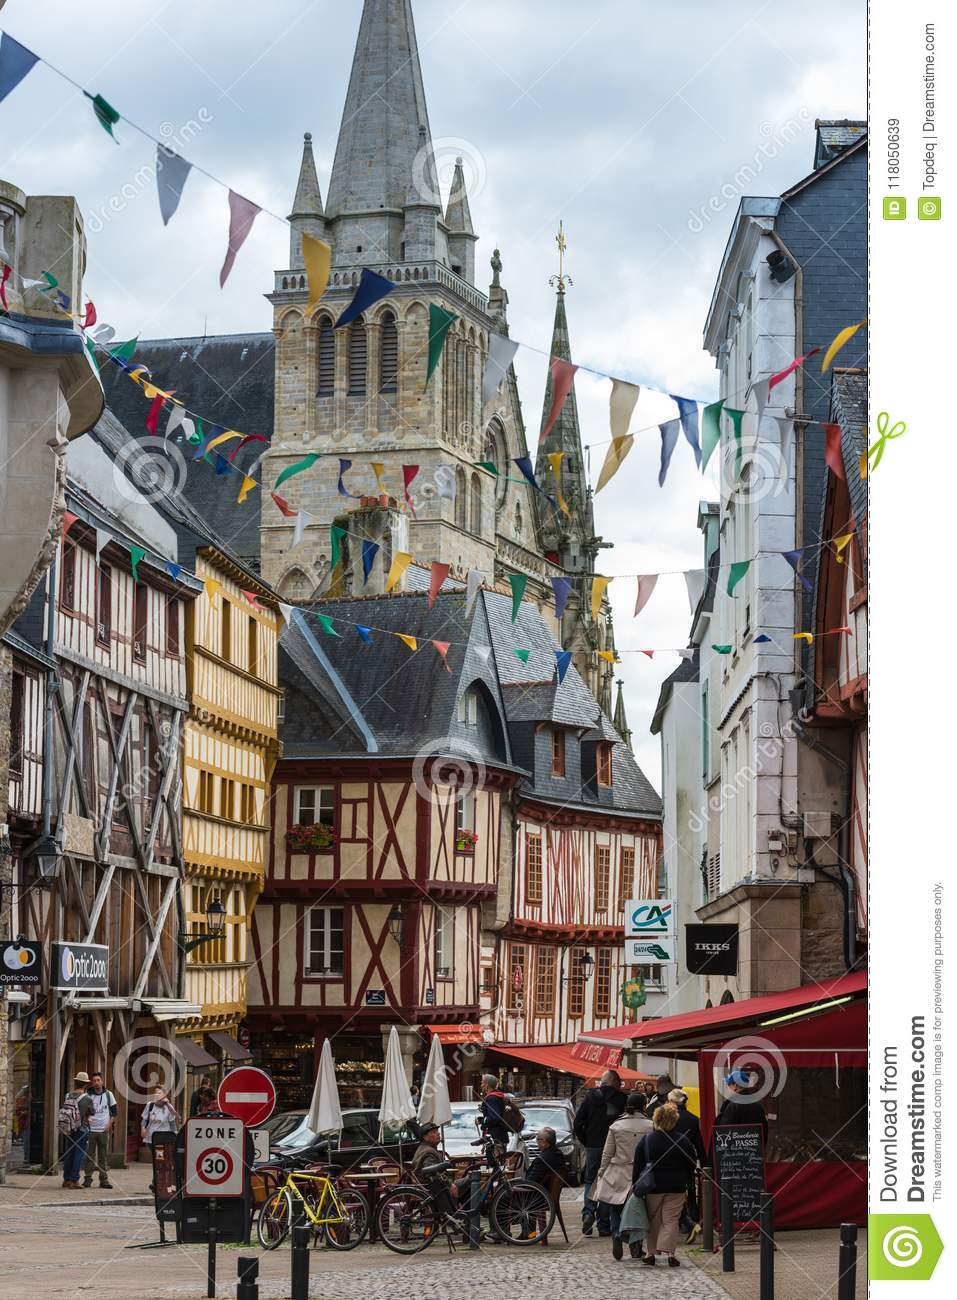 FRANCE, VANNES - SEPTEMBER 22  street with colorful houses in a medieval  city of Vannes Brittany on September 22, 2015 b2213180f1cc